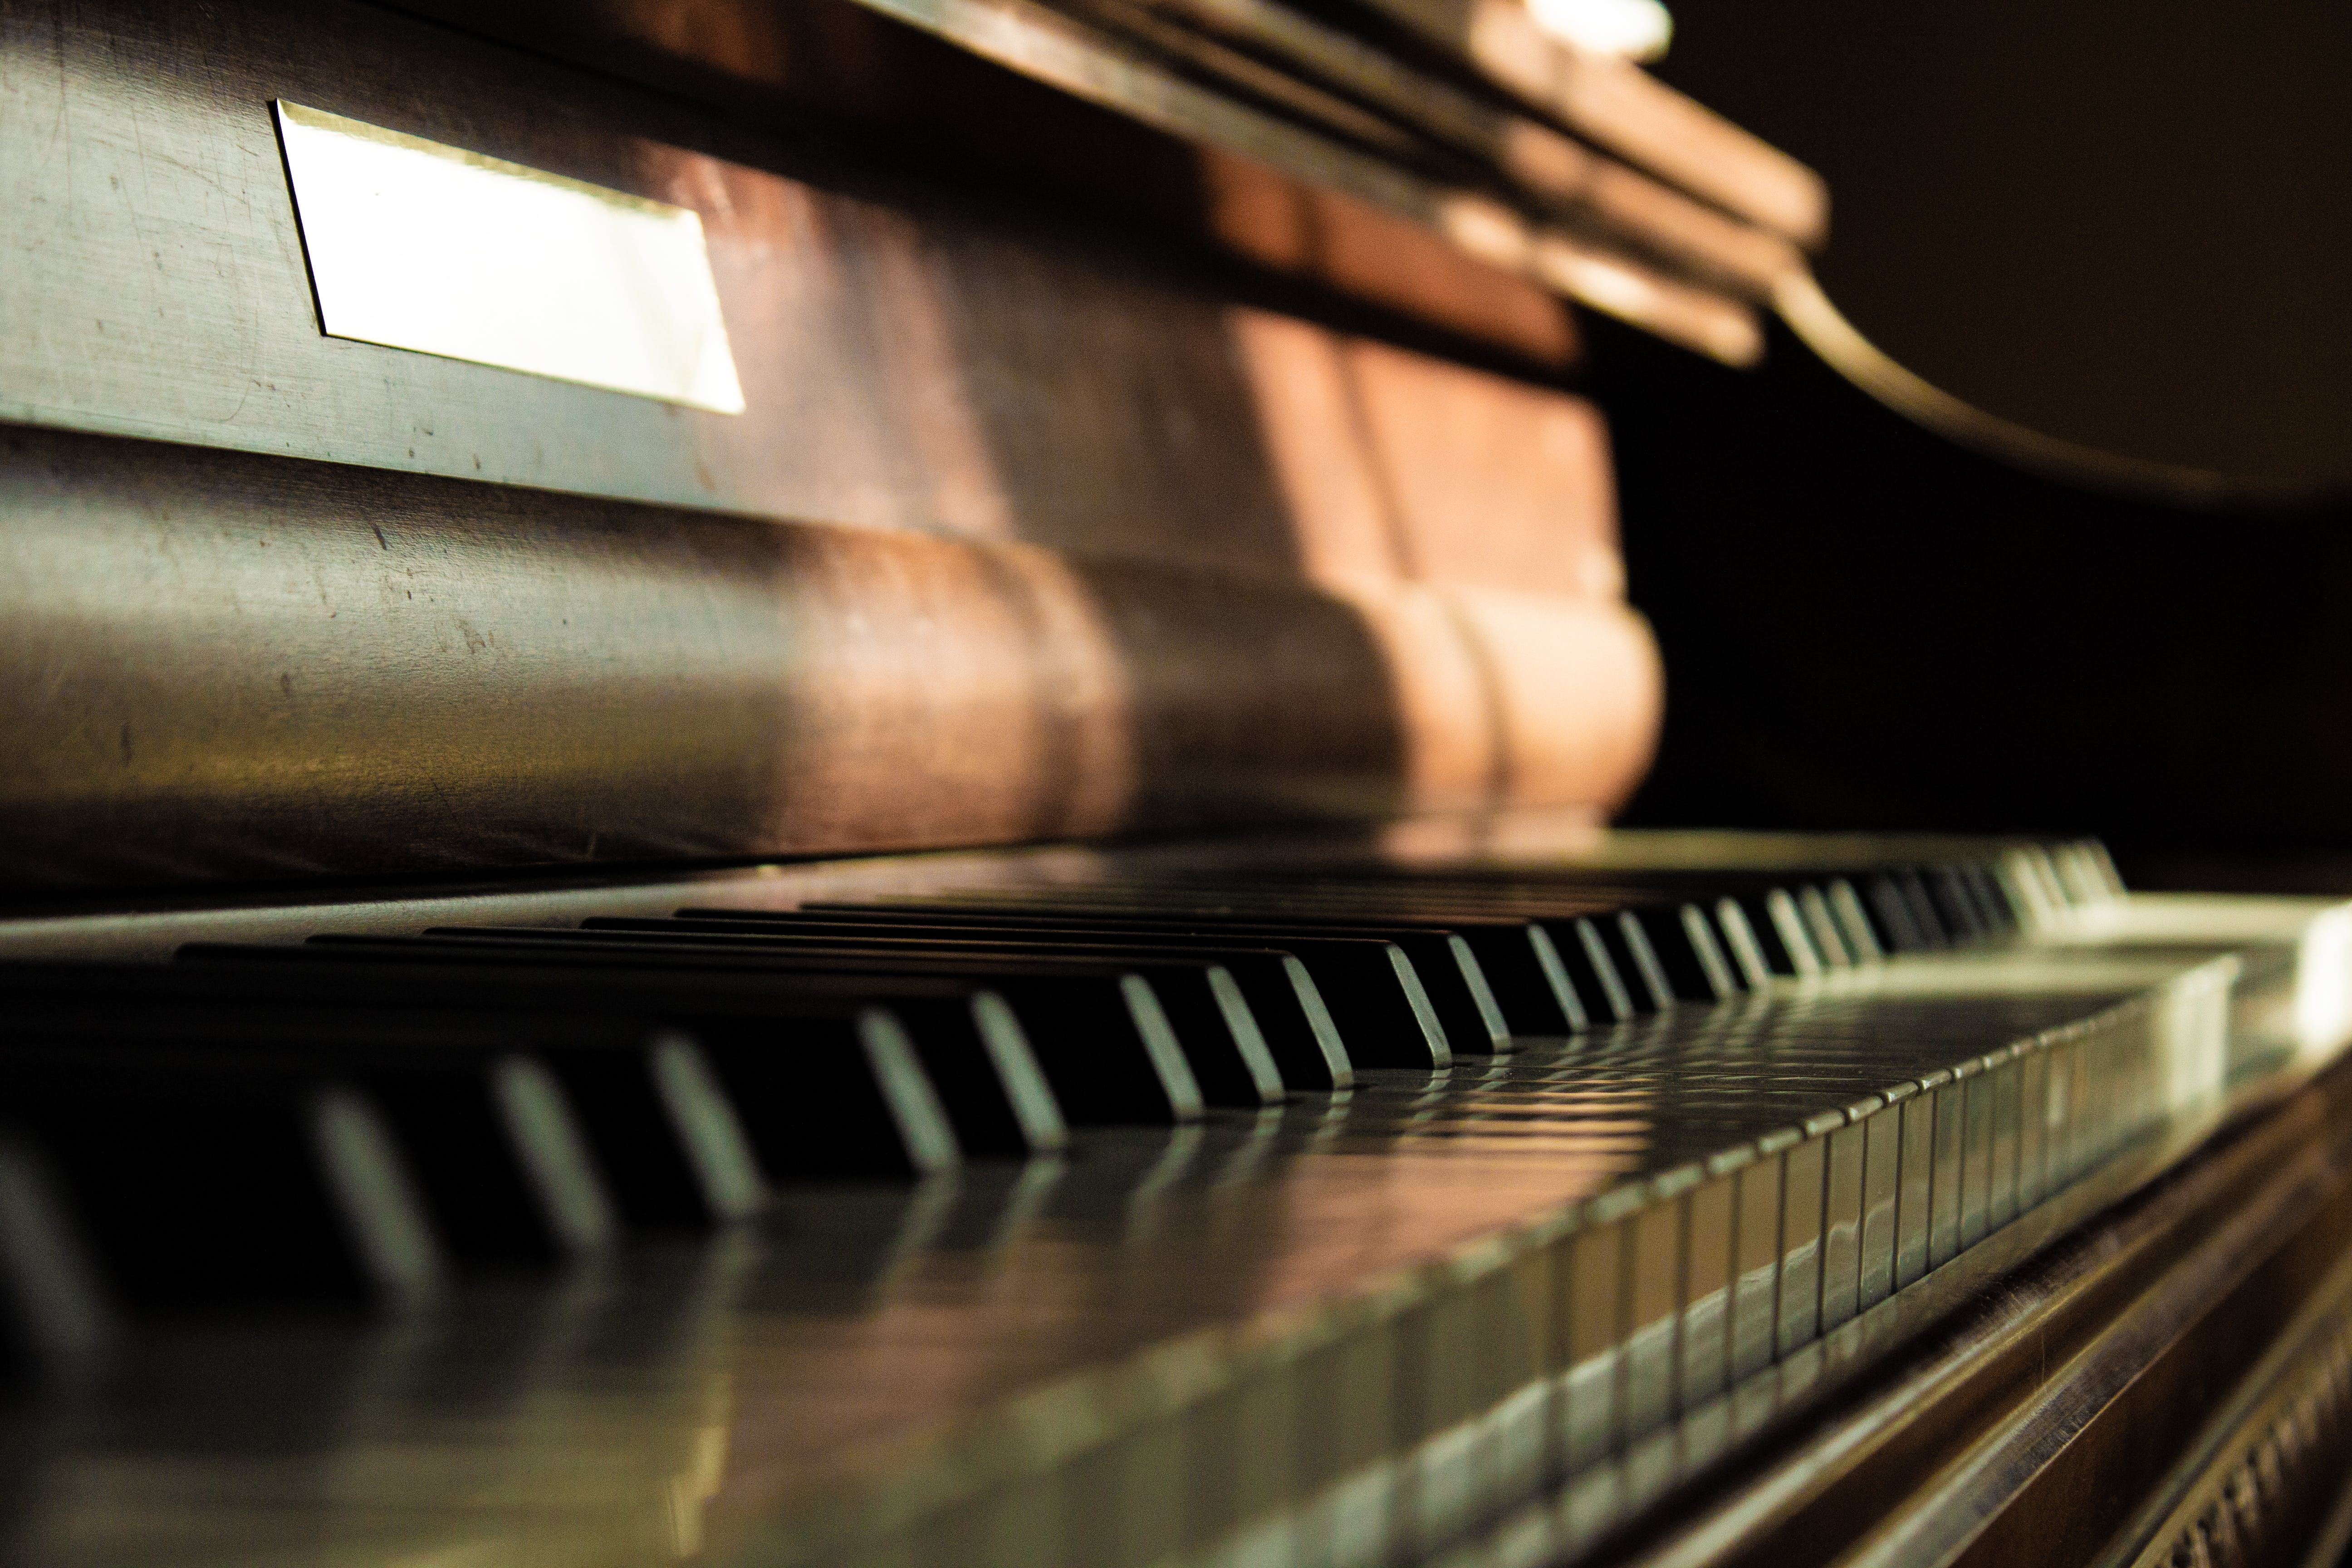 Free stock photo of instruments, music, pianist, piano